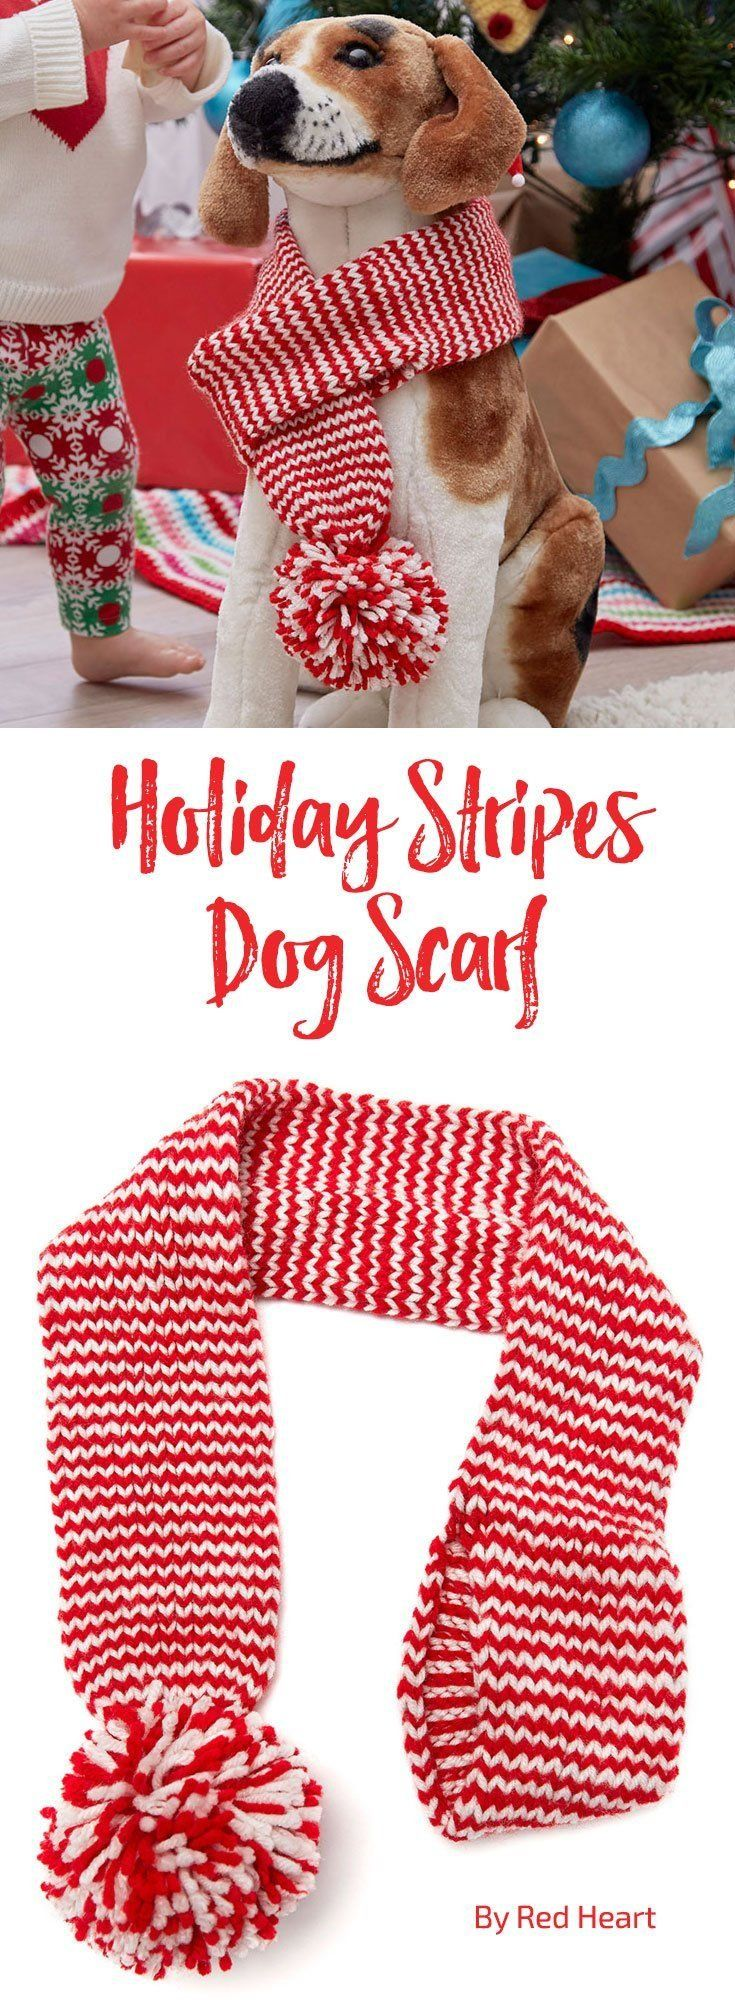 Holiday Stripes Dog Scarf Free Knit Pattern In Super Saver Yarn